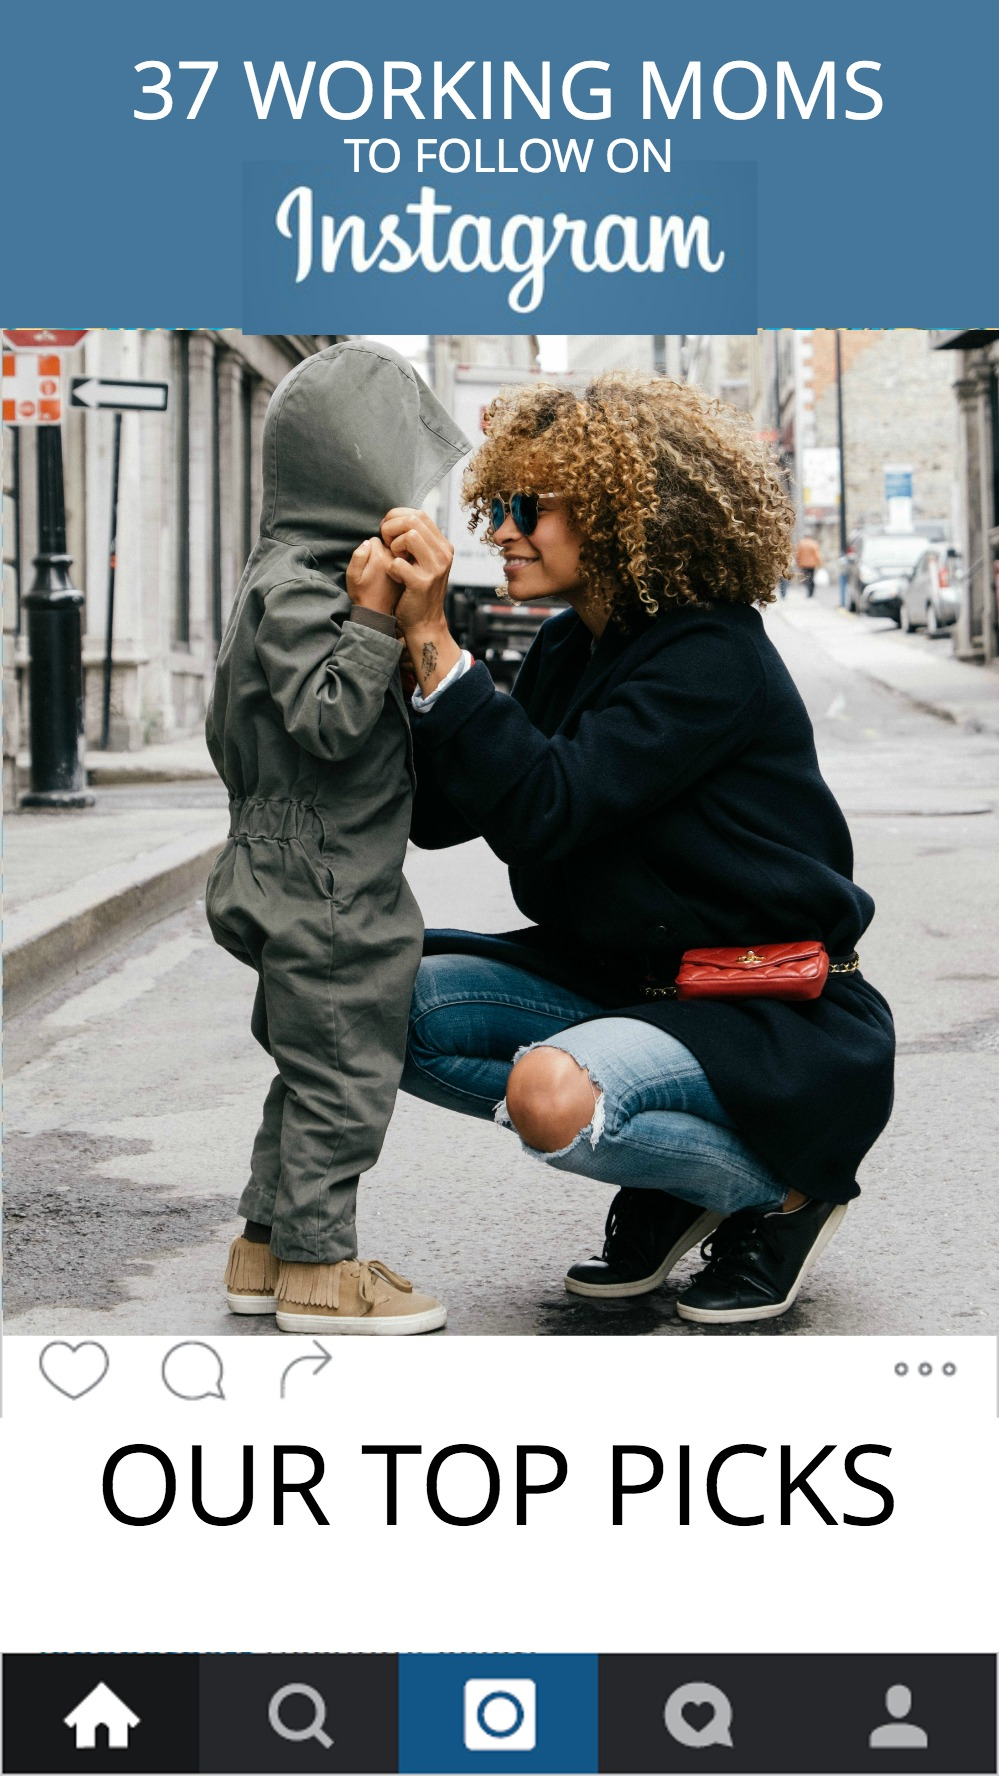 Want to spice up your Instagram feed with fresh, fabulous working-mom awesomeness? Check out this list of our favorite working moms on Instagram.